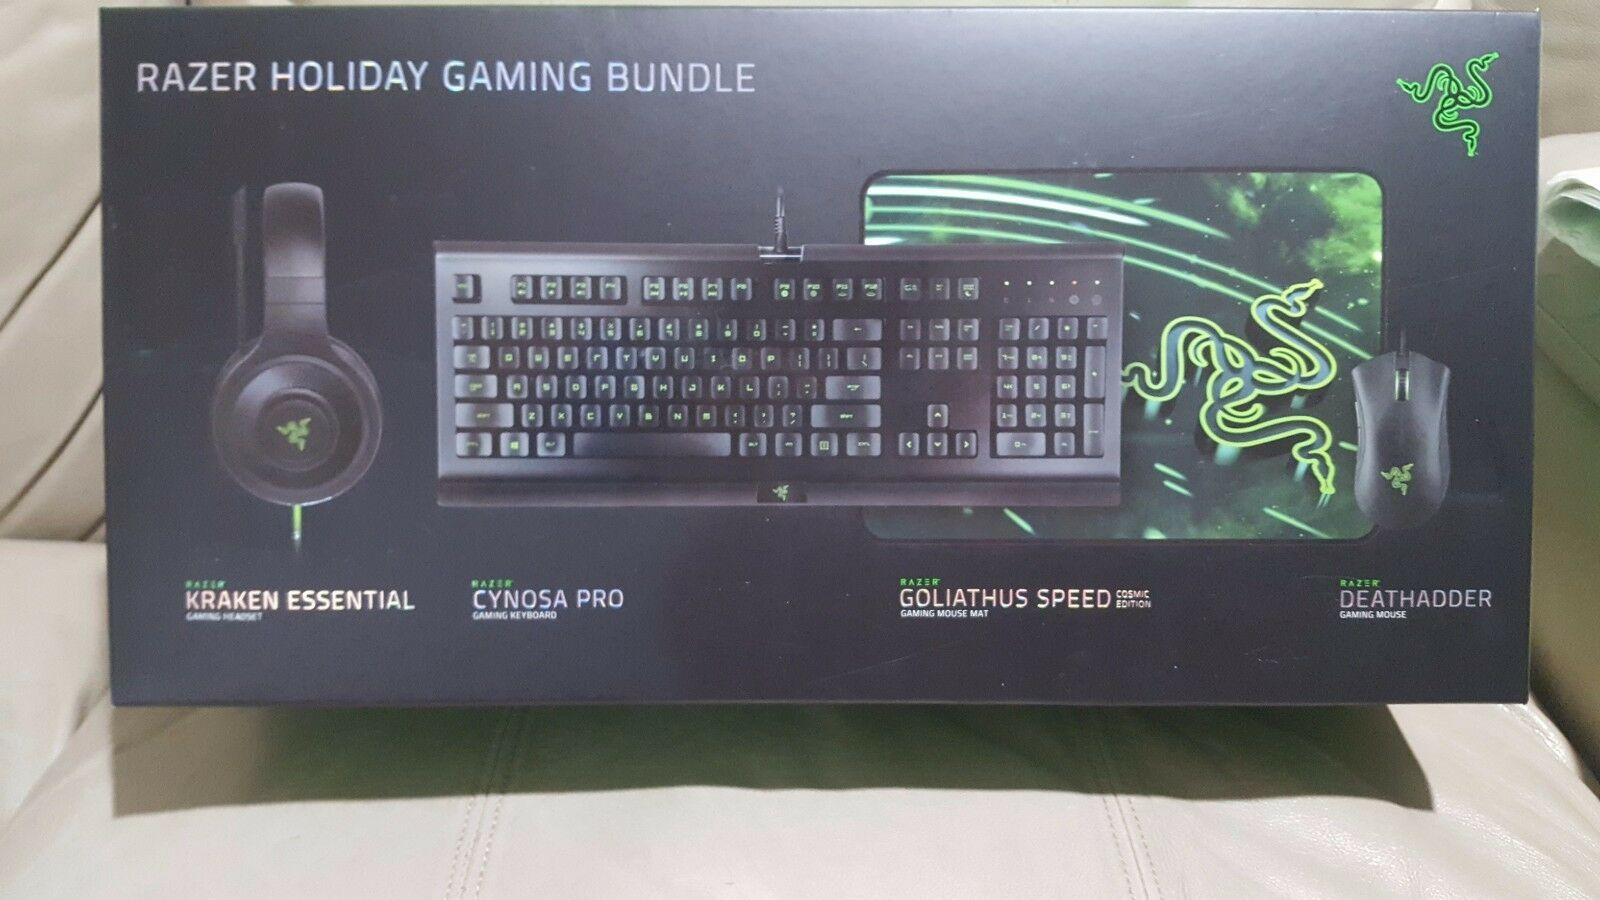 Razer Holiday Gaming Bundle - Kraken,Cynosa Pro, Goliathus S